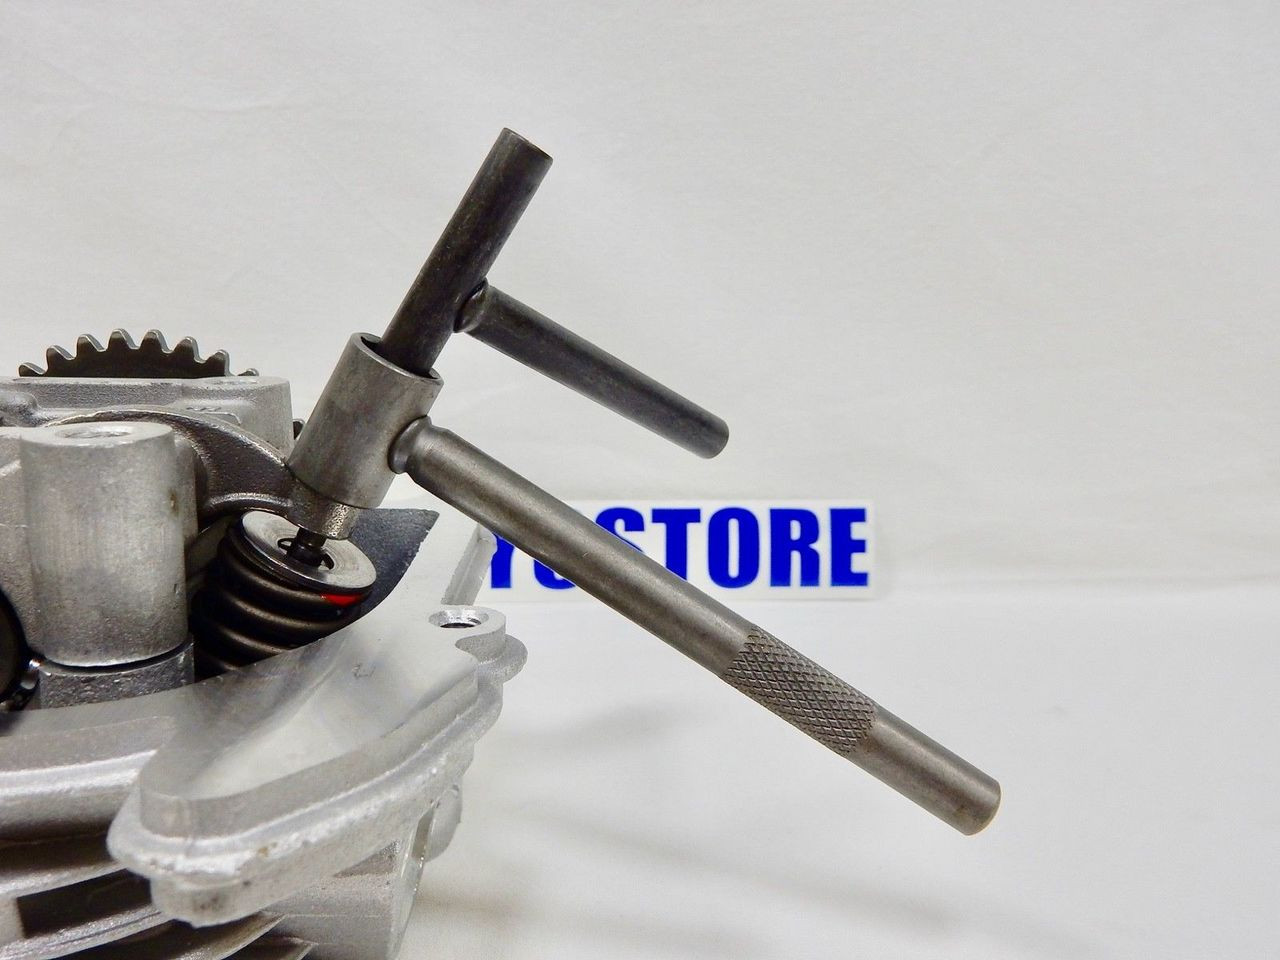 VALVE / TAPPET ADJUSTING TOOL SET 9mm HEX HEAD & 3mm SQUARE HEAD WRENCH